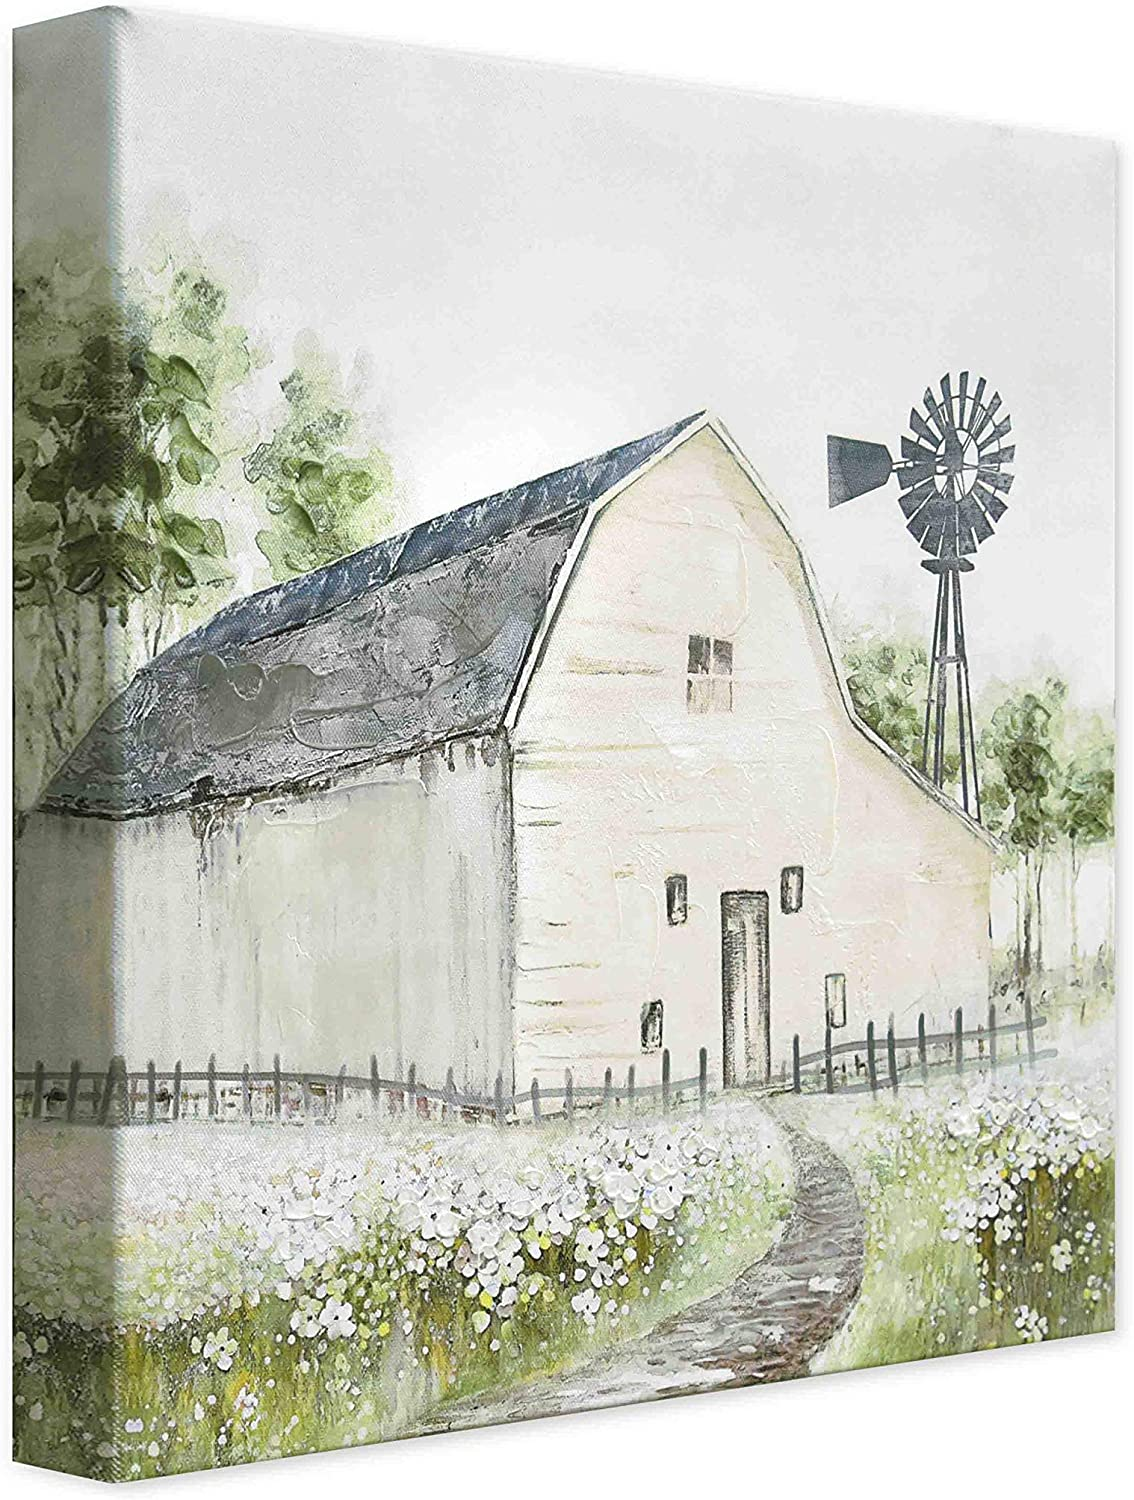 3D Hand-Painted Original Contemporary Oil Painting with Farm House and Windmill On Canvas, Knife Painted Spring Countryside Landscape Wall Art for Home Décor, Framed and Ready to Hang 14x14 Inches